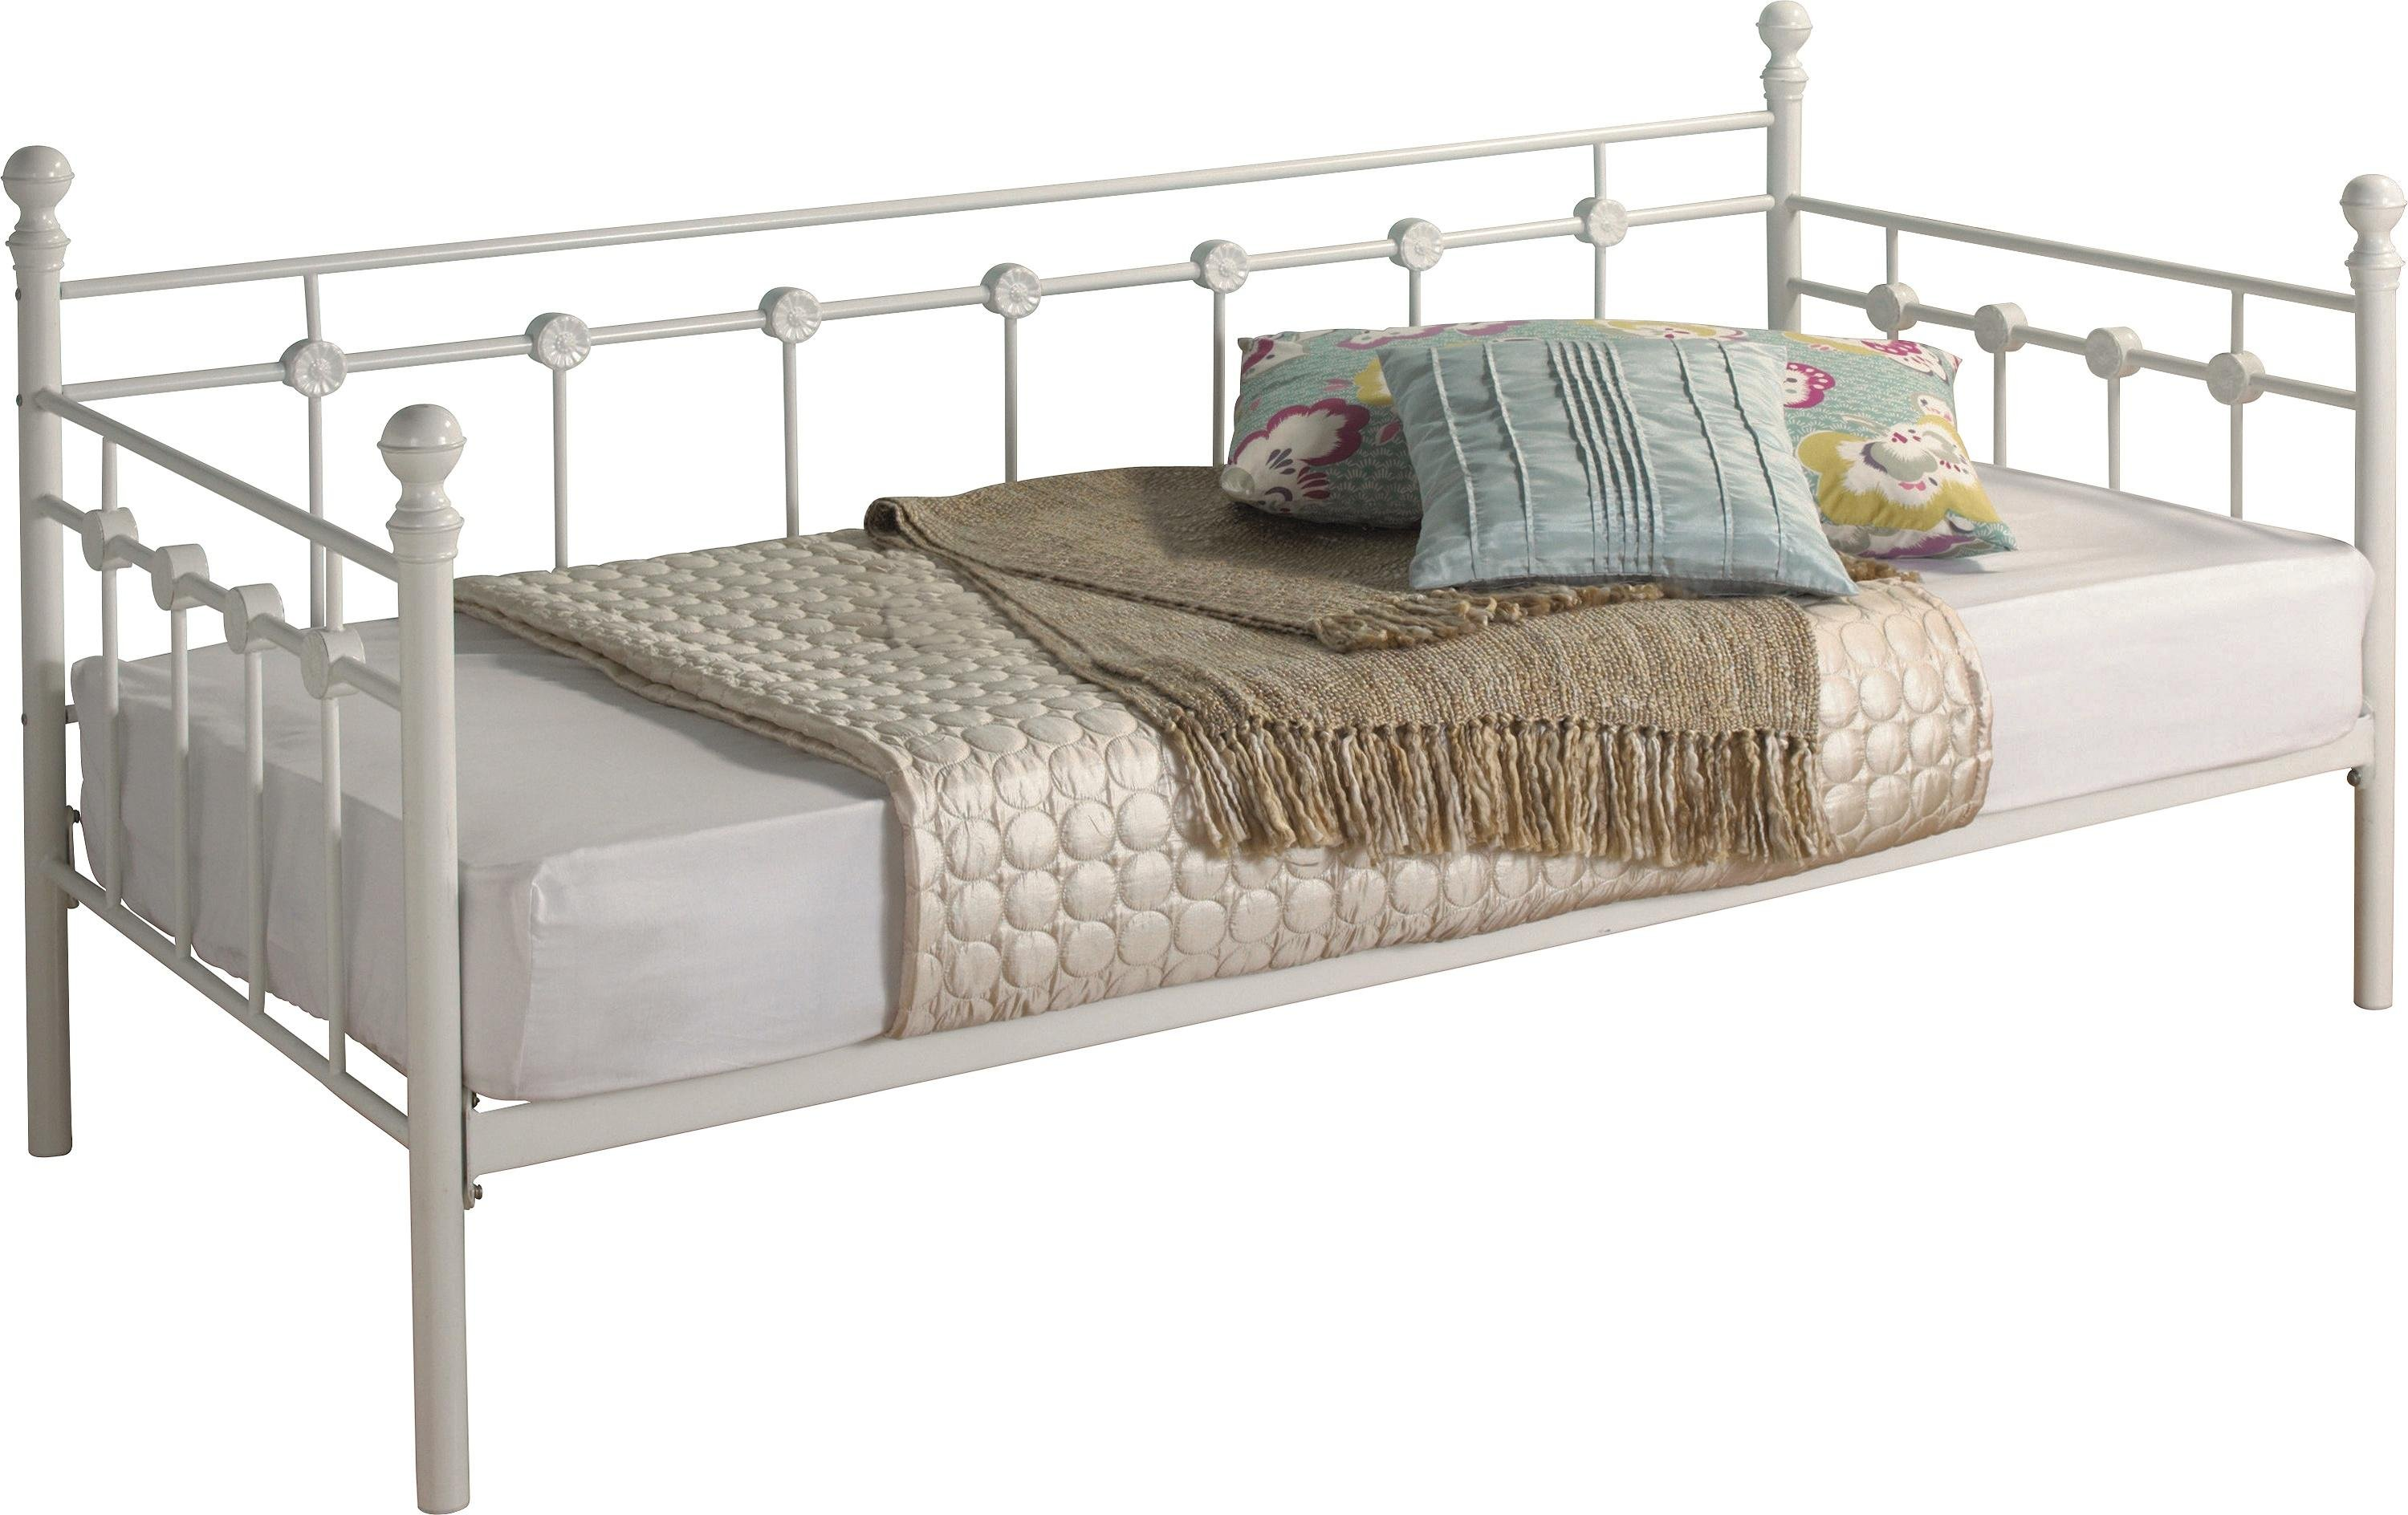 Buy Collection Abigail Metal Single Daybed Frame White at Argos